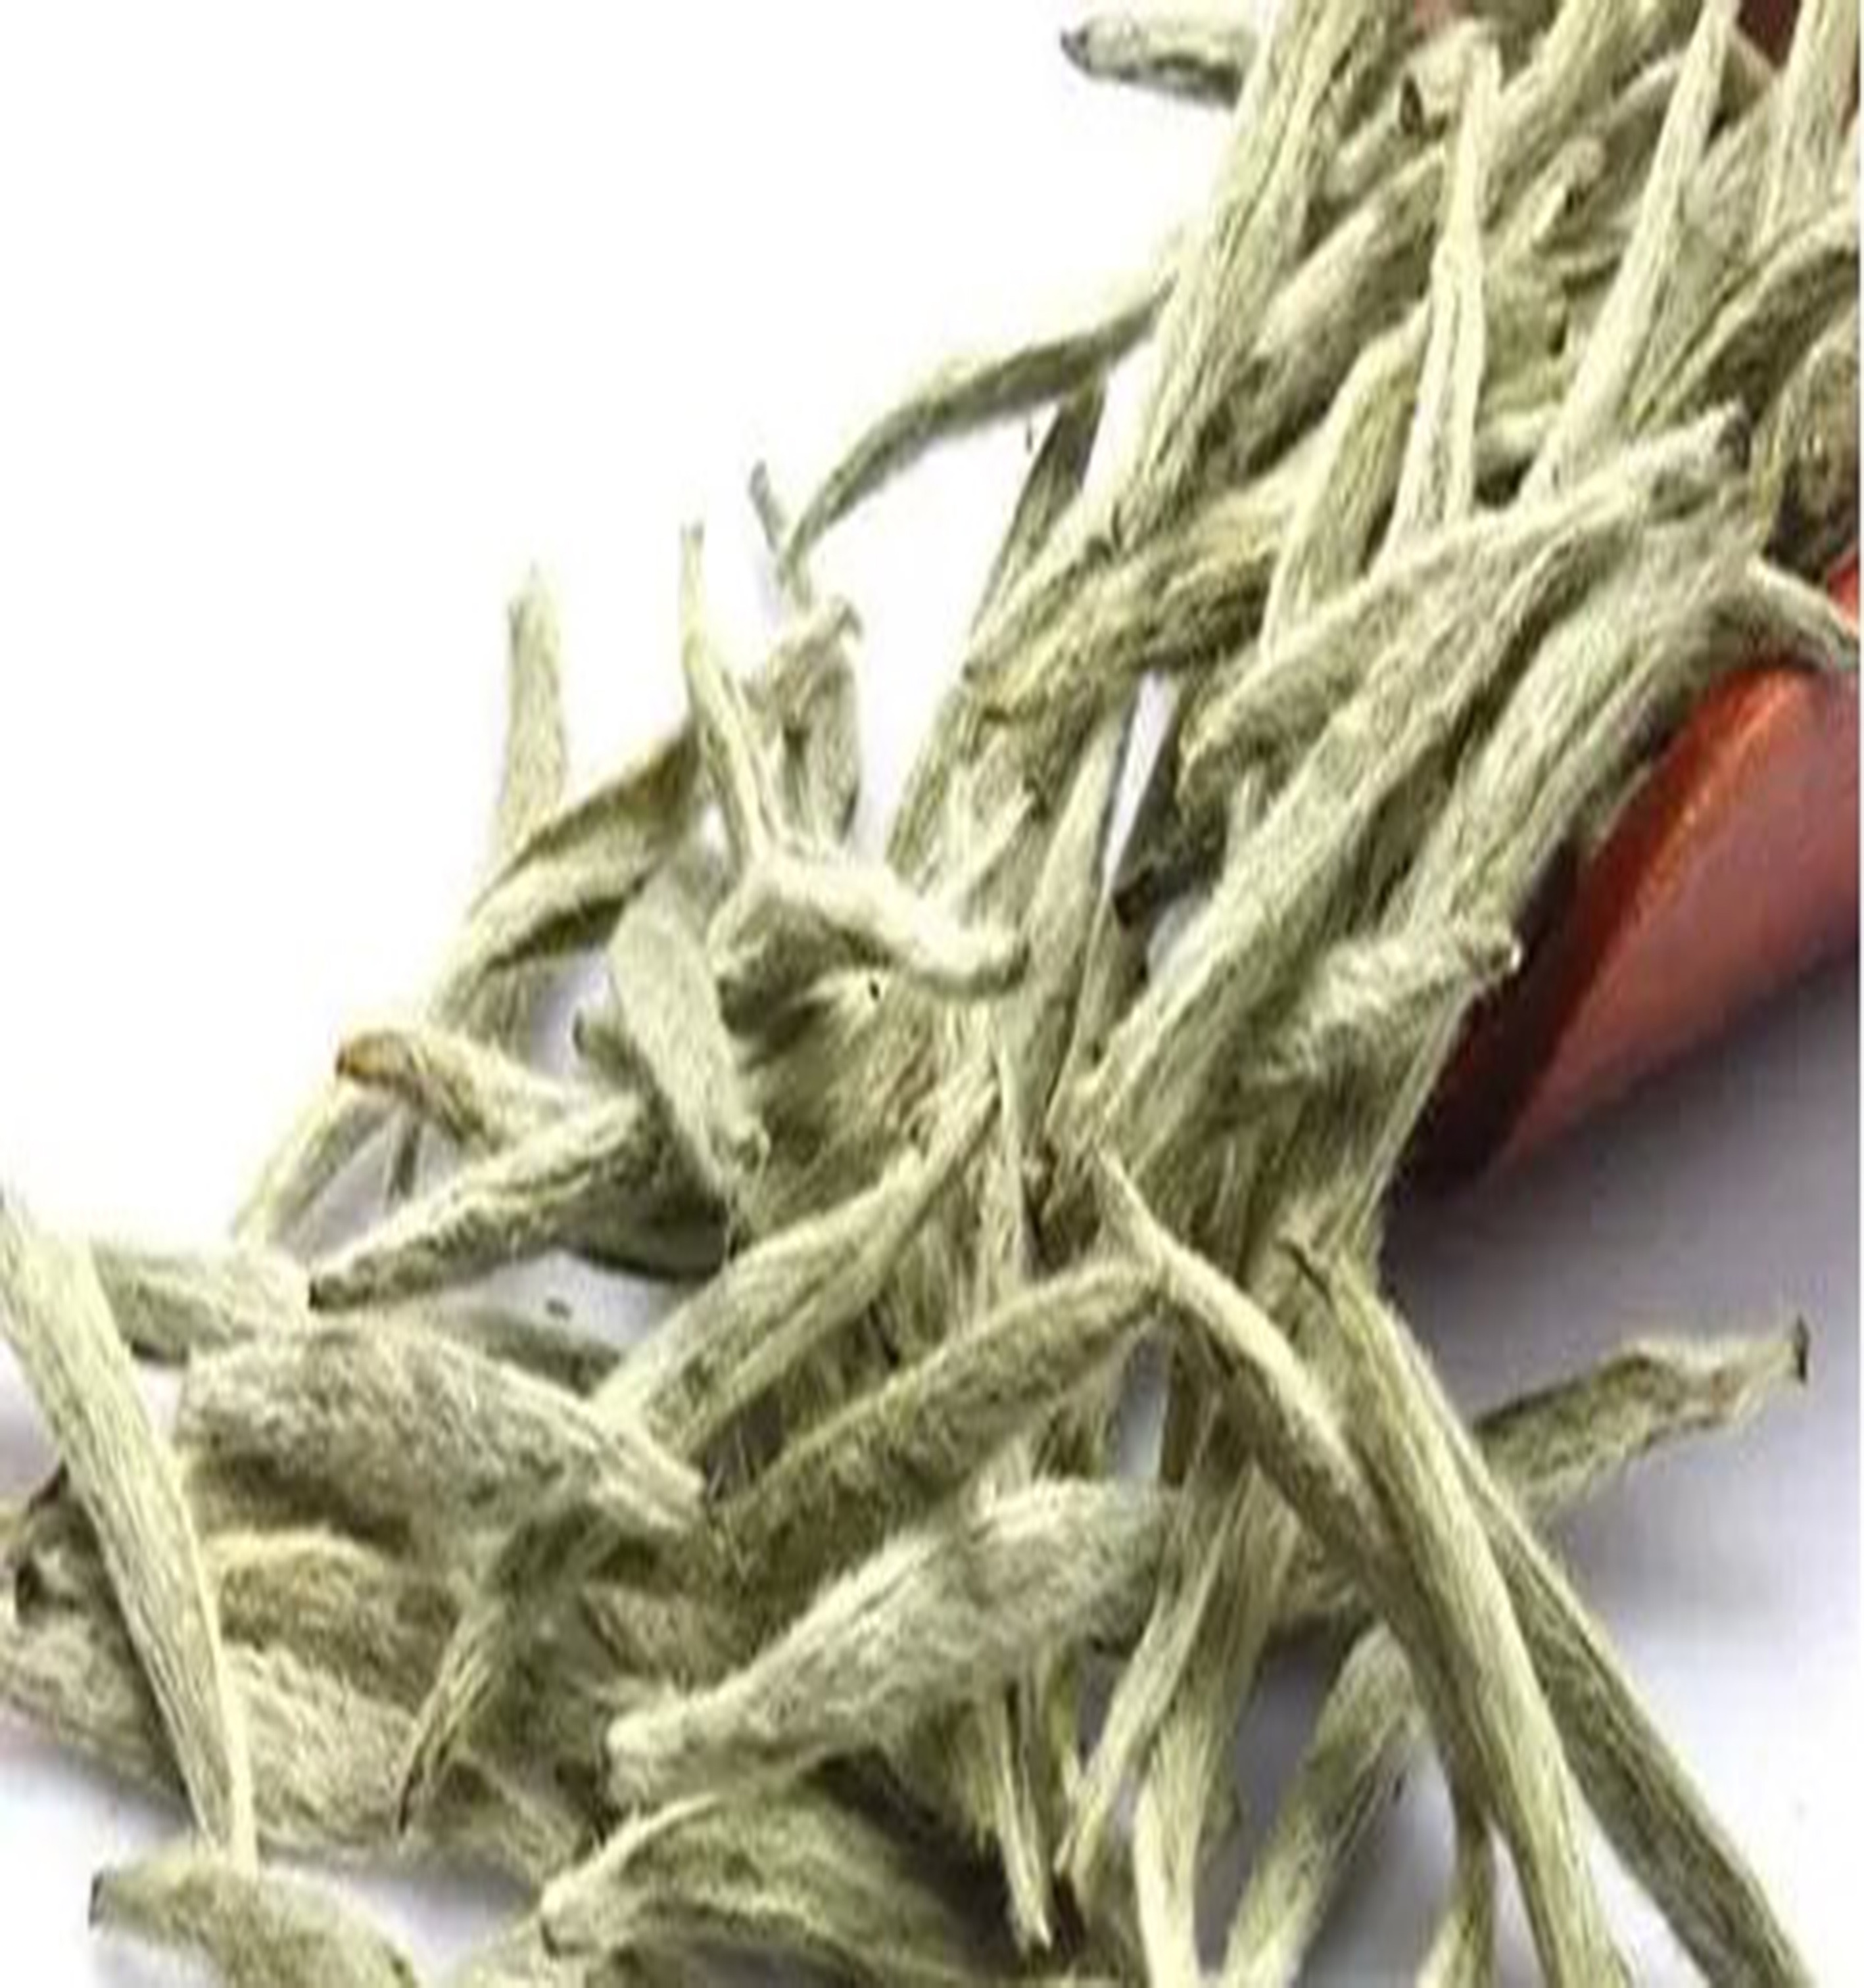 Popular selling Chinese Fuding White Silver Needle tea, Organic Baihao Silver Needle Tea - 4uTea   4uTea.com